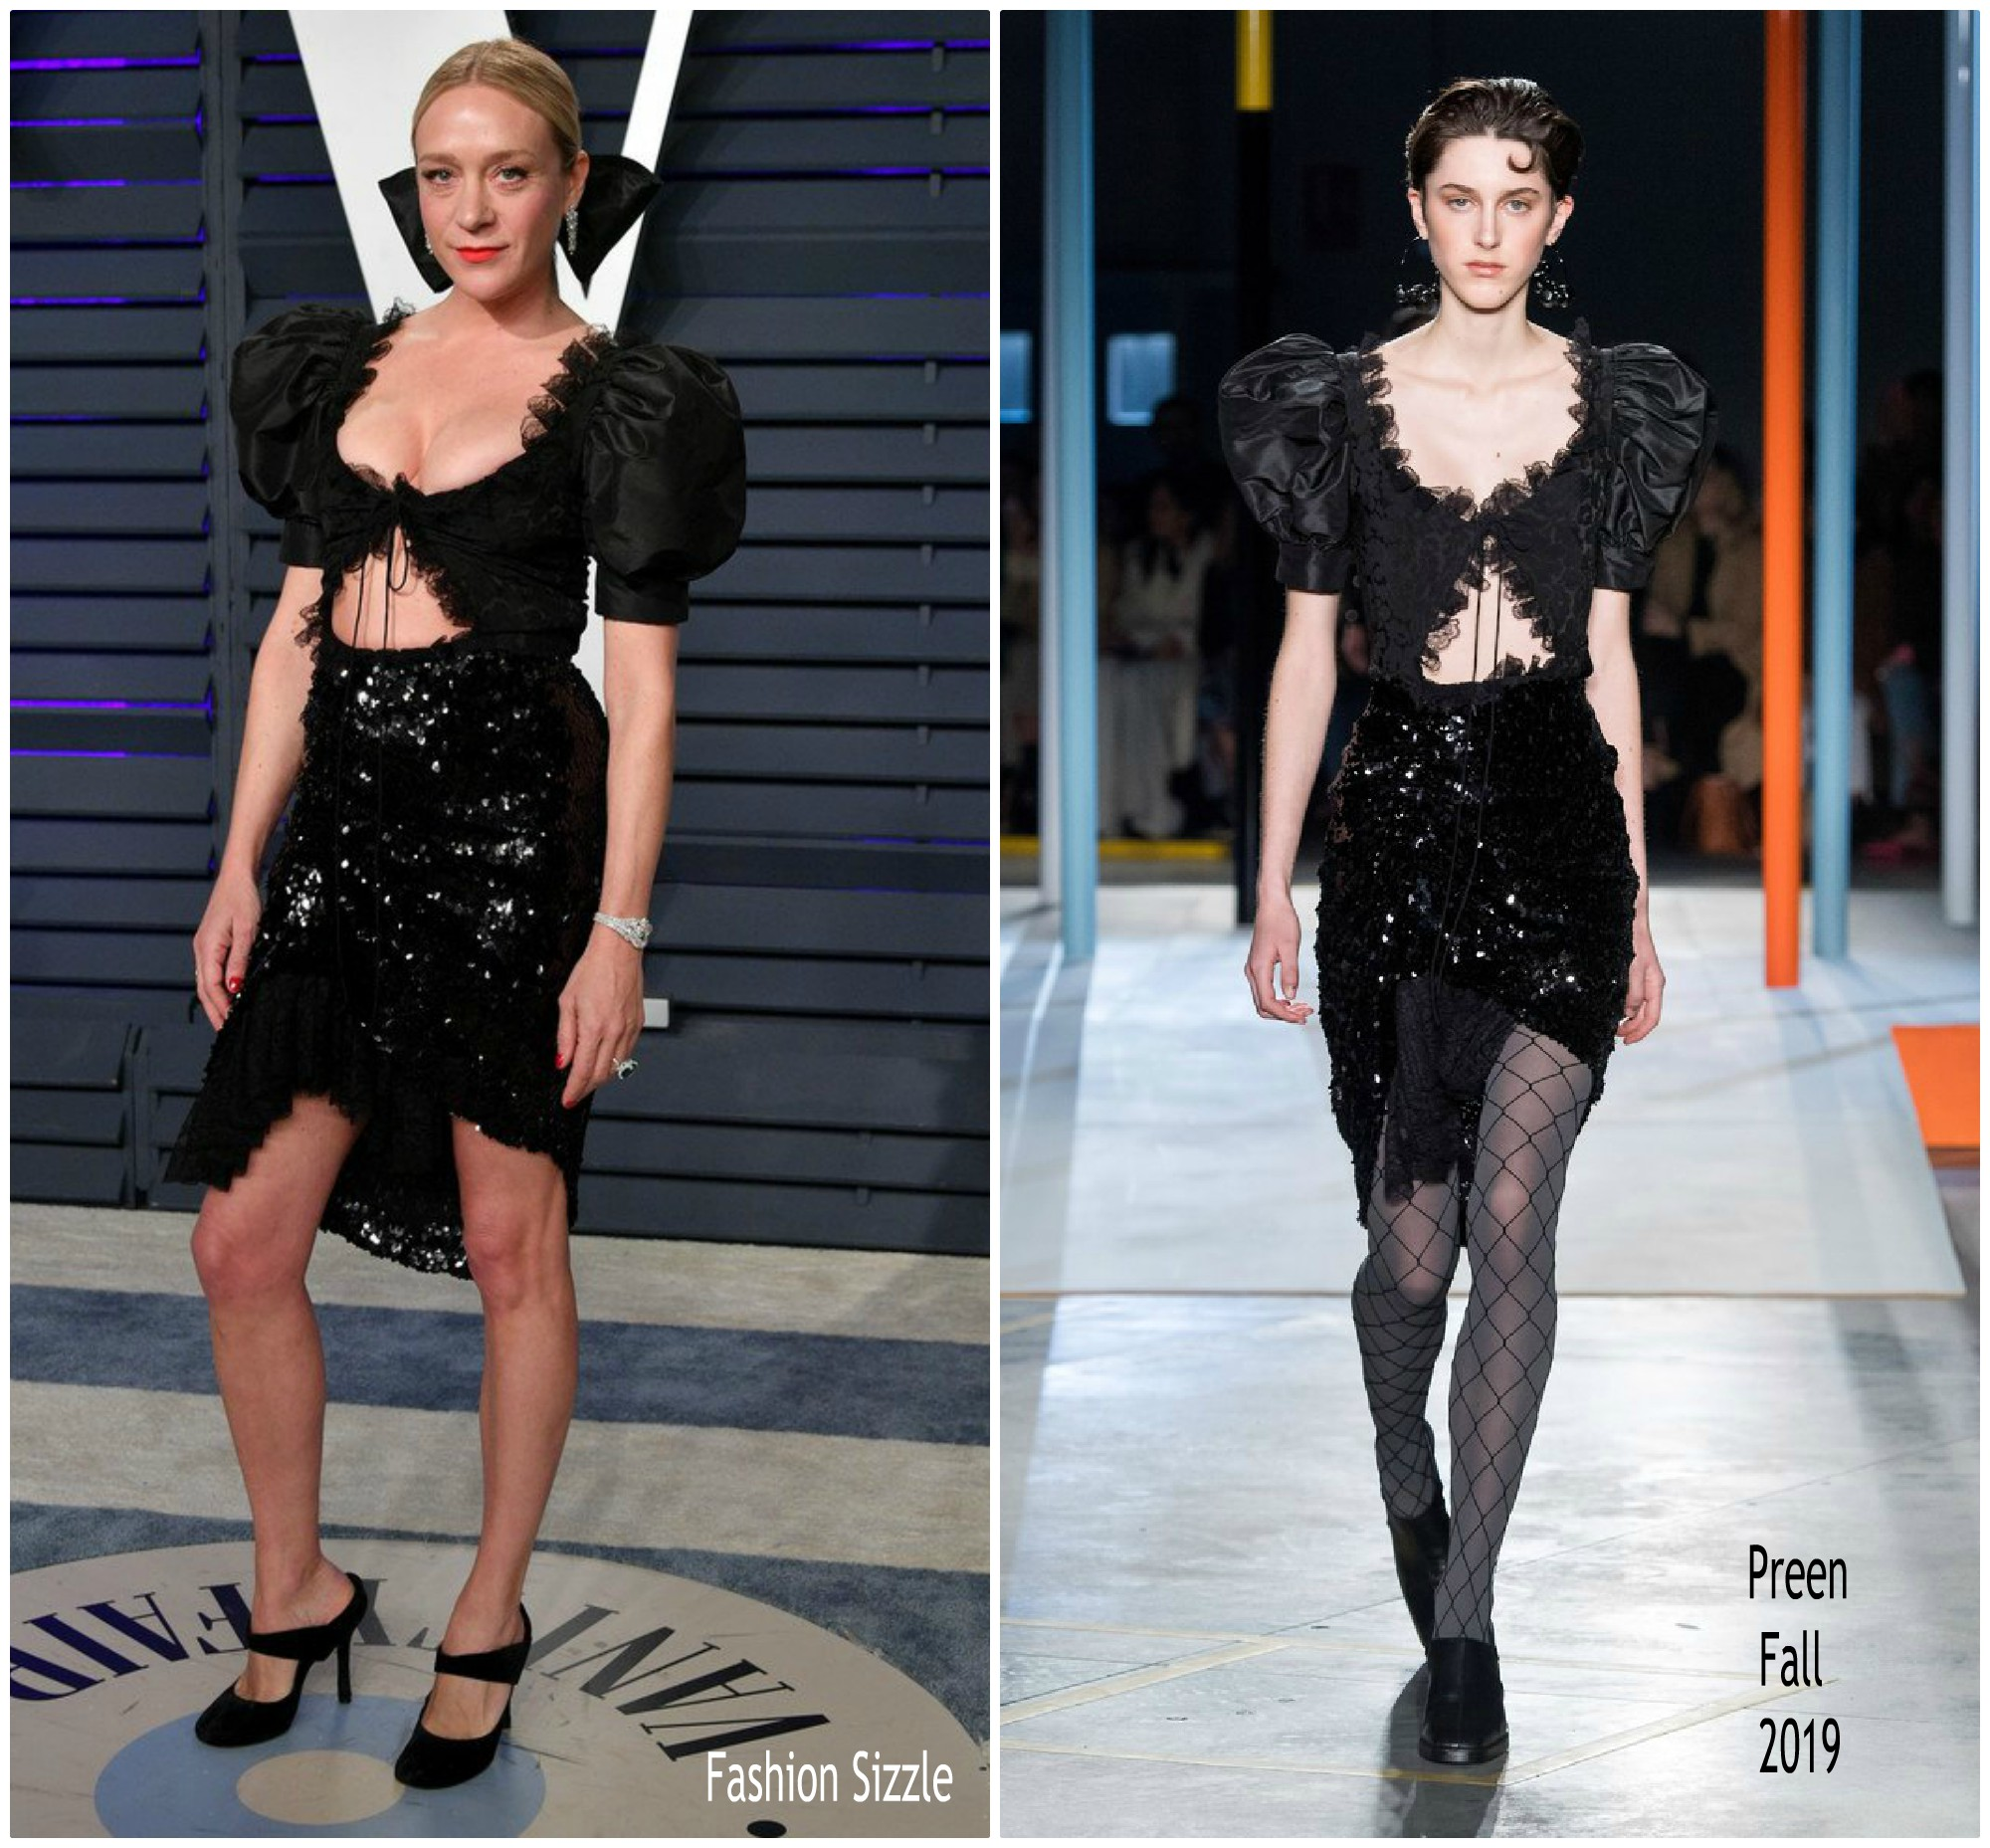 chloe-sevigny-in-preen-2019-vanity-fair-oscar-party